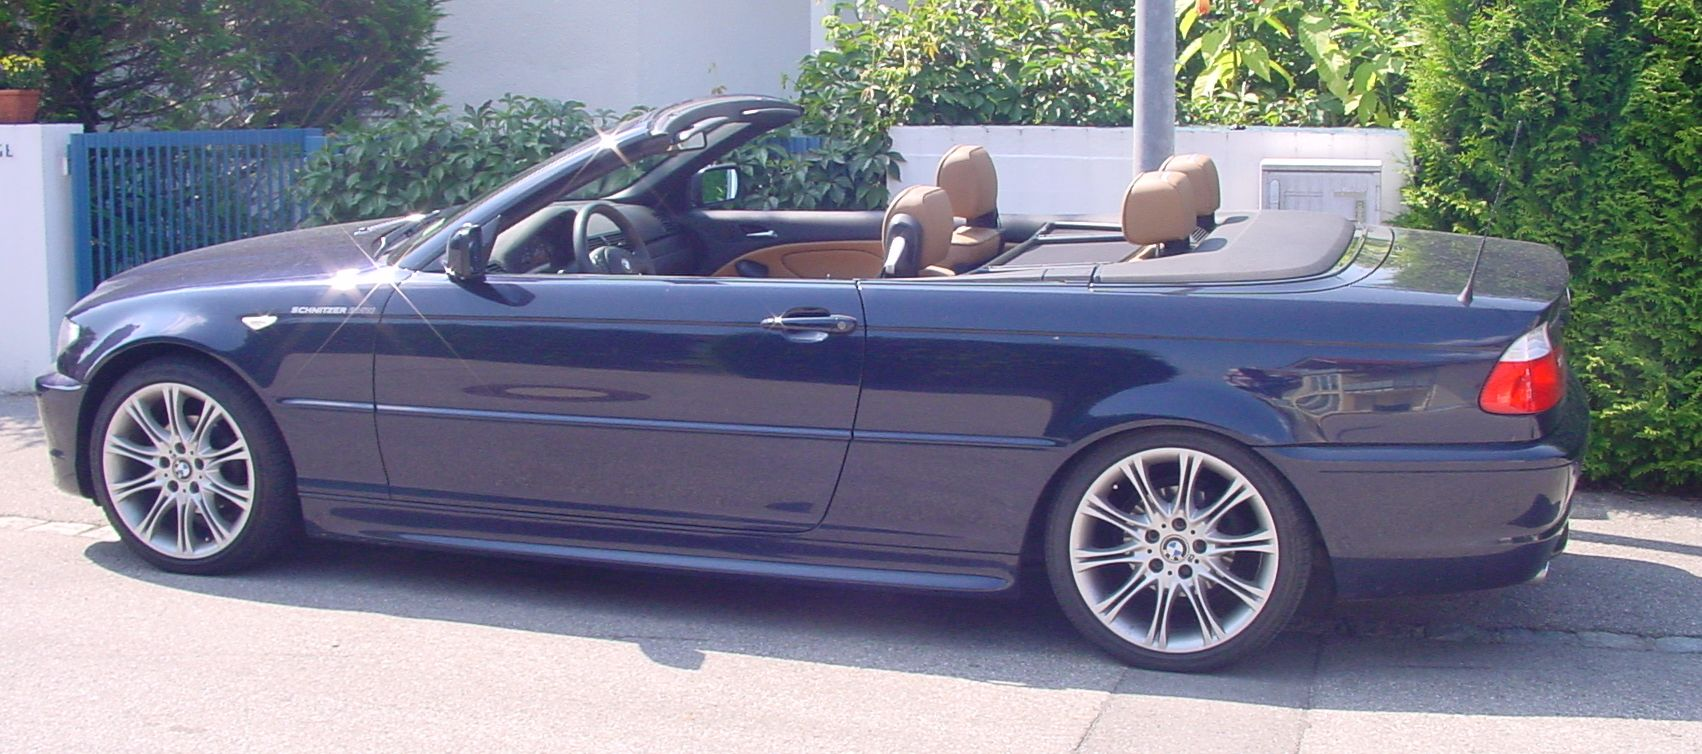 bmw 318i cabrio e36 pictures photos information of modification video to bmw 318i cabrio. Black Bedroom Furniture Sets. Home Design Ideas